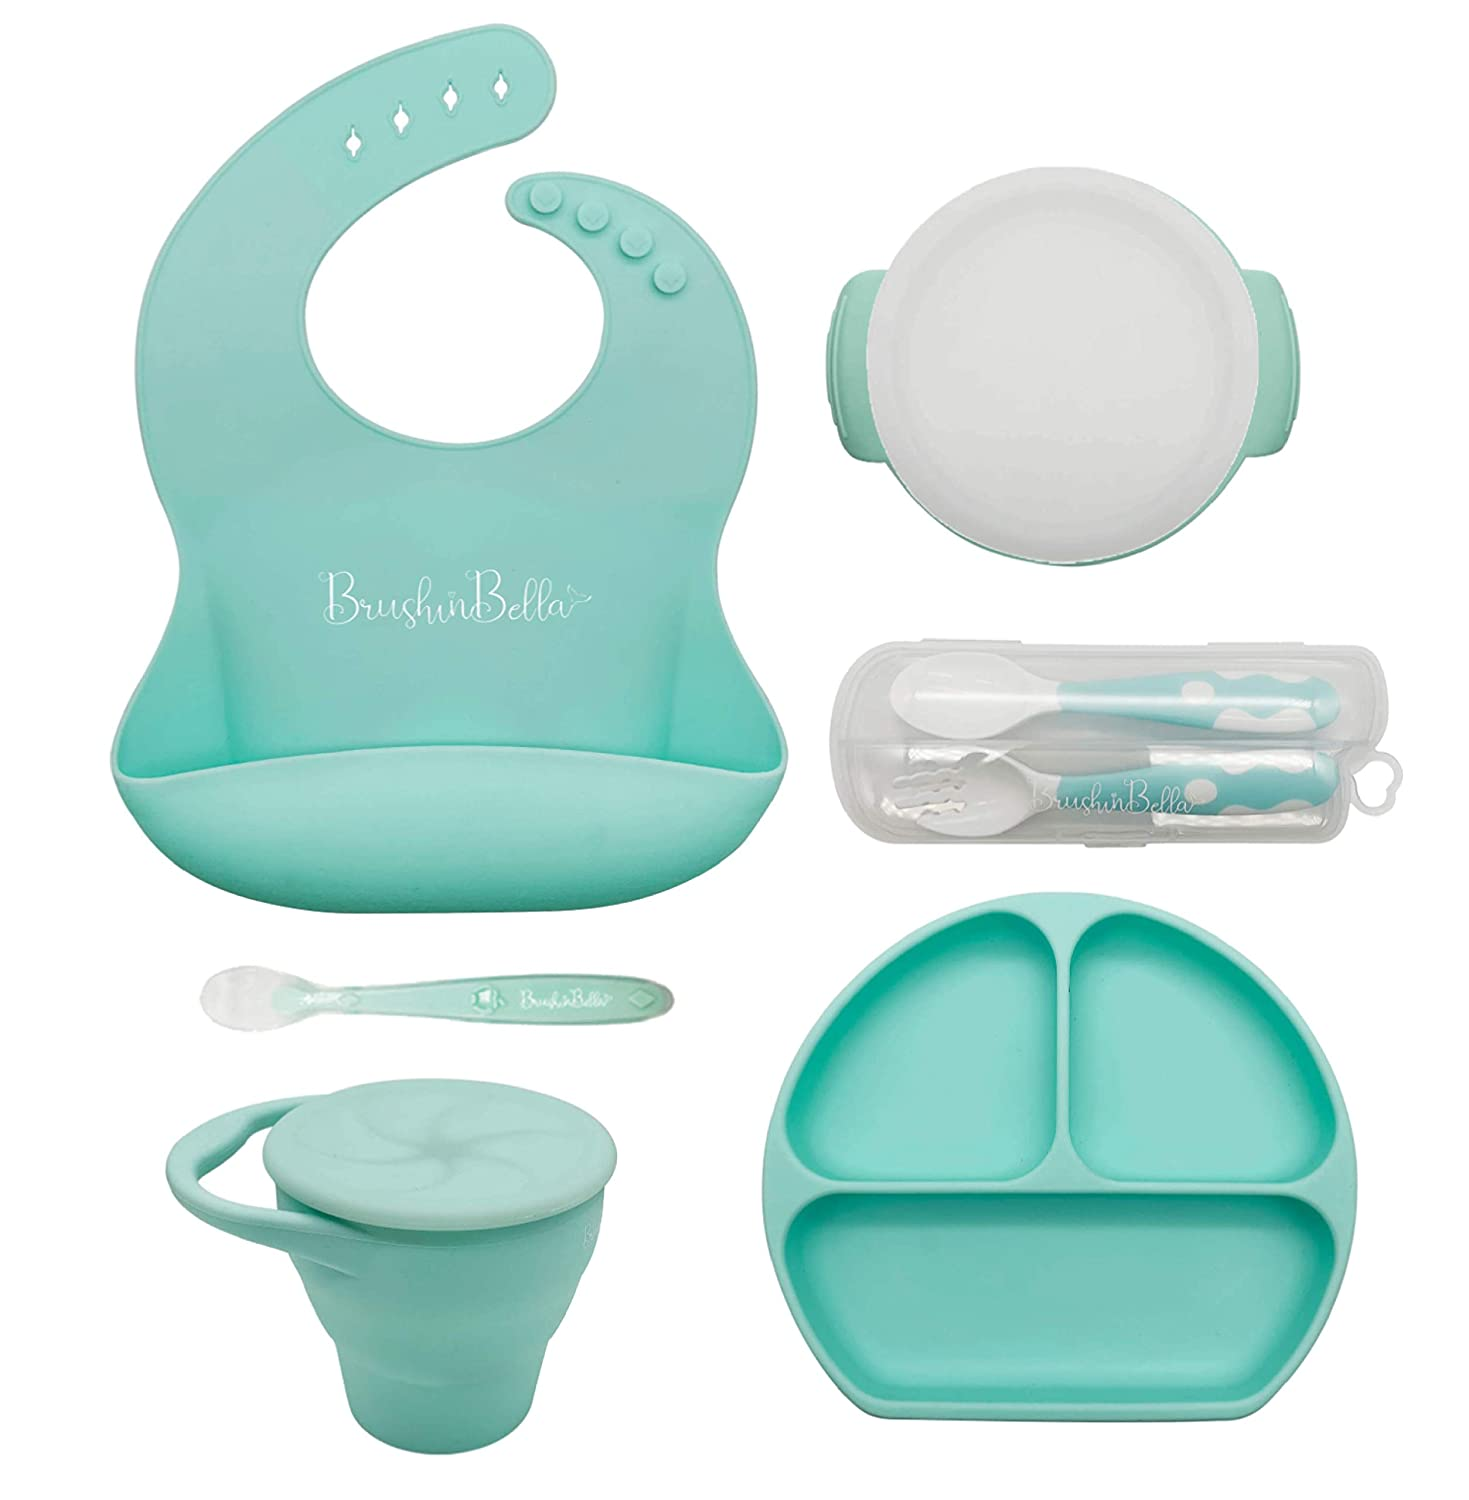 BrushinBella Baby Feeding Supplies - Complete Baby Feeding Set with Baby Plate, Baby Spoons First Stage, Silicone Bib and Snack Cup - Infant Eating Utensils and Baby Bowl with Suction